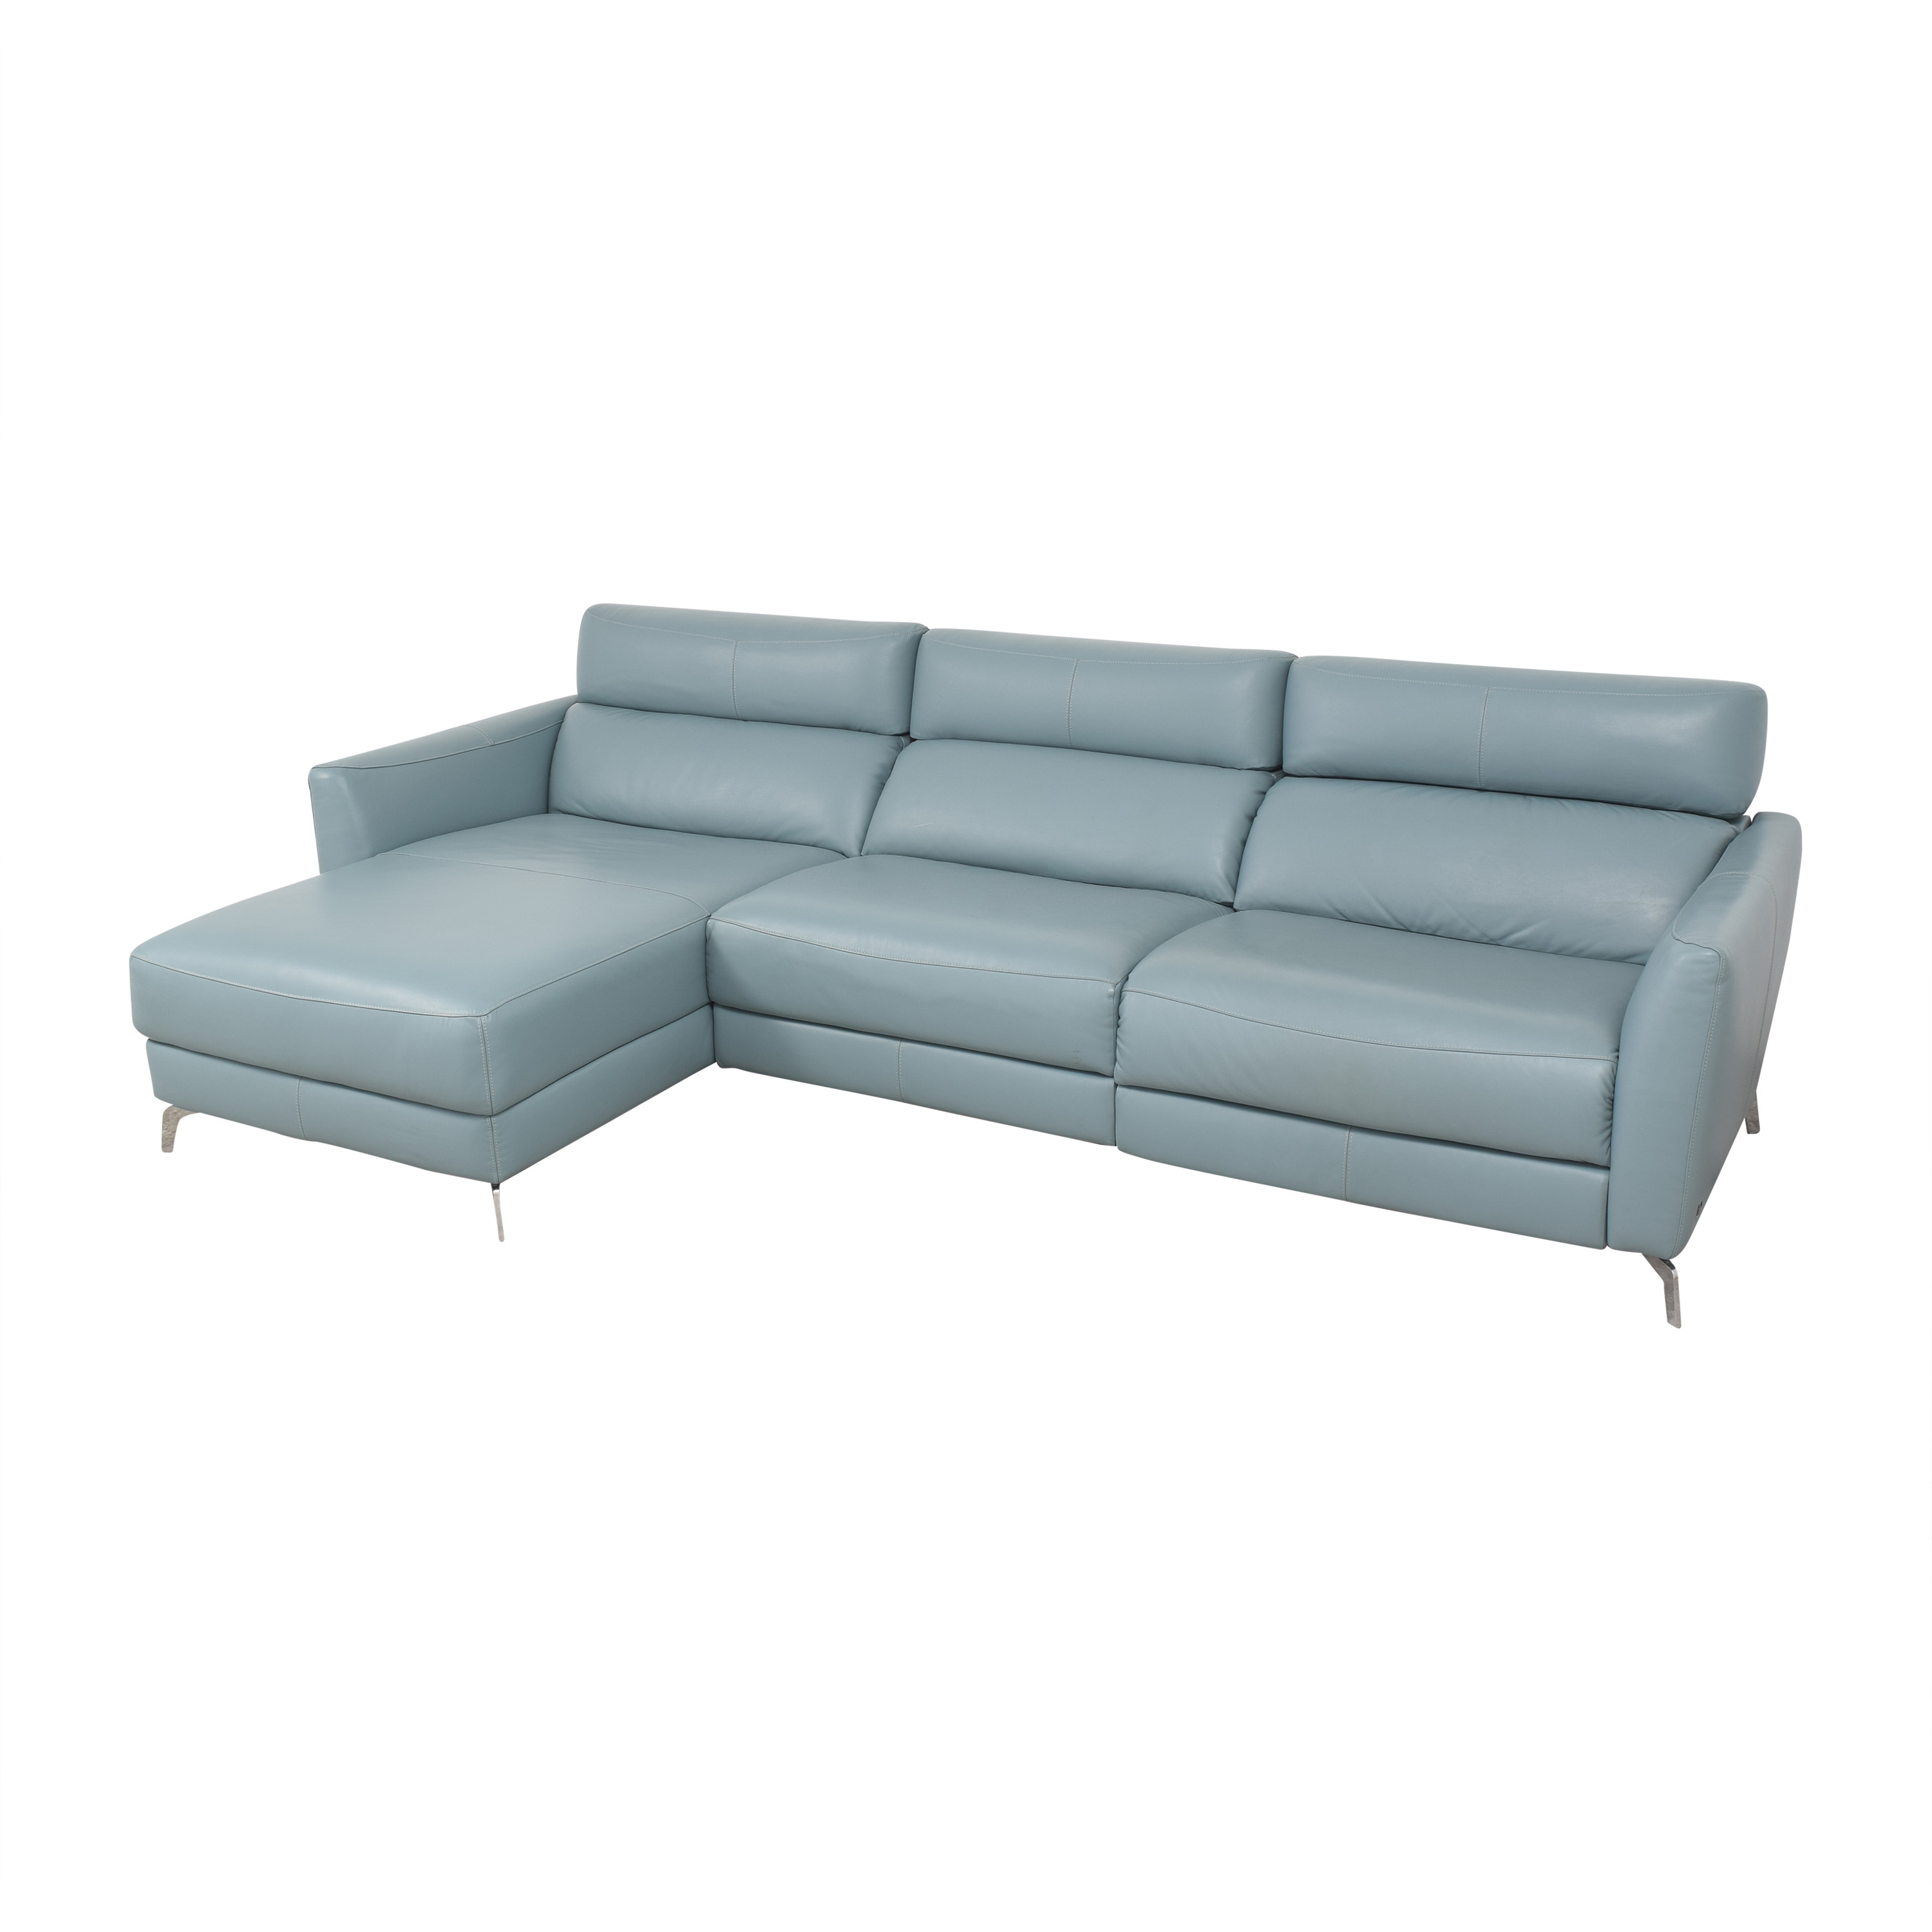 Natuzzi Reclining Sectional with Chaise sale